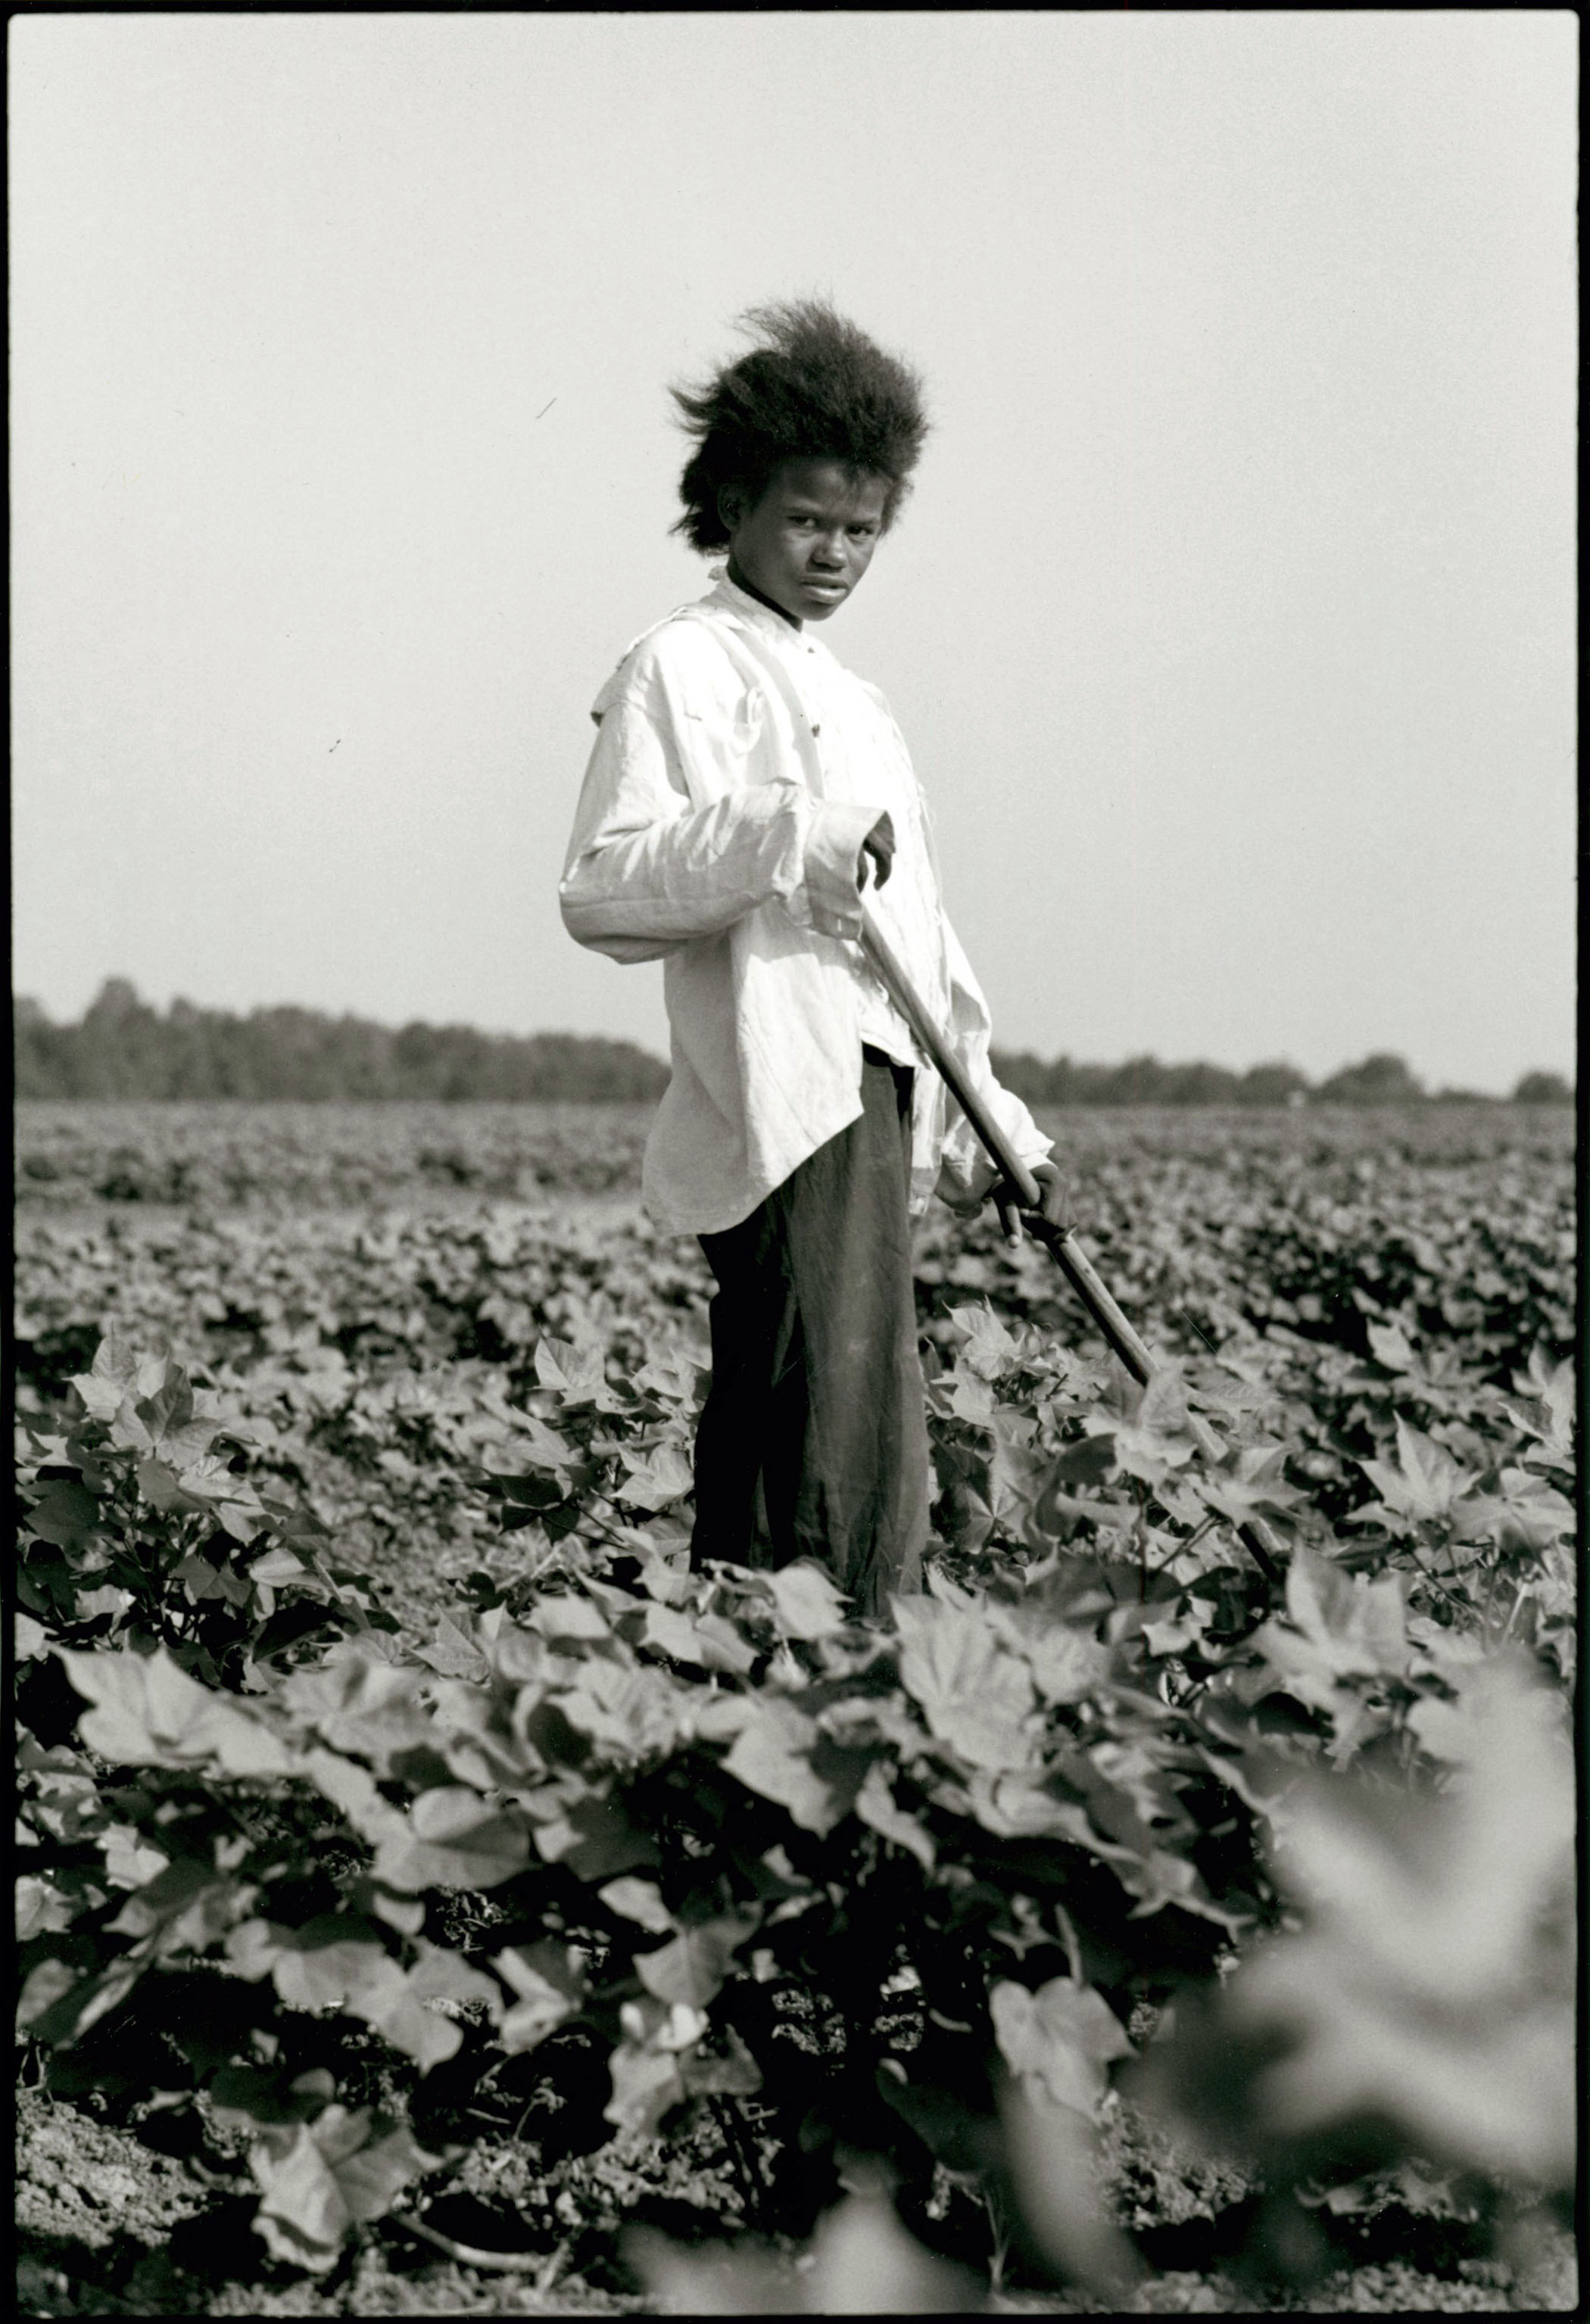 Tallahatchie County, Mississippi, 1963